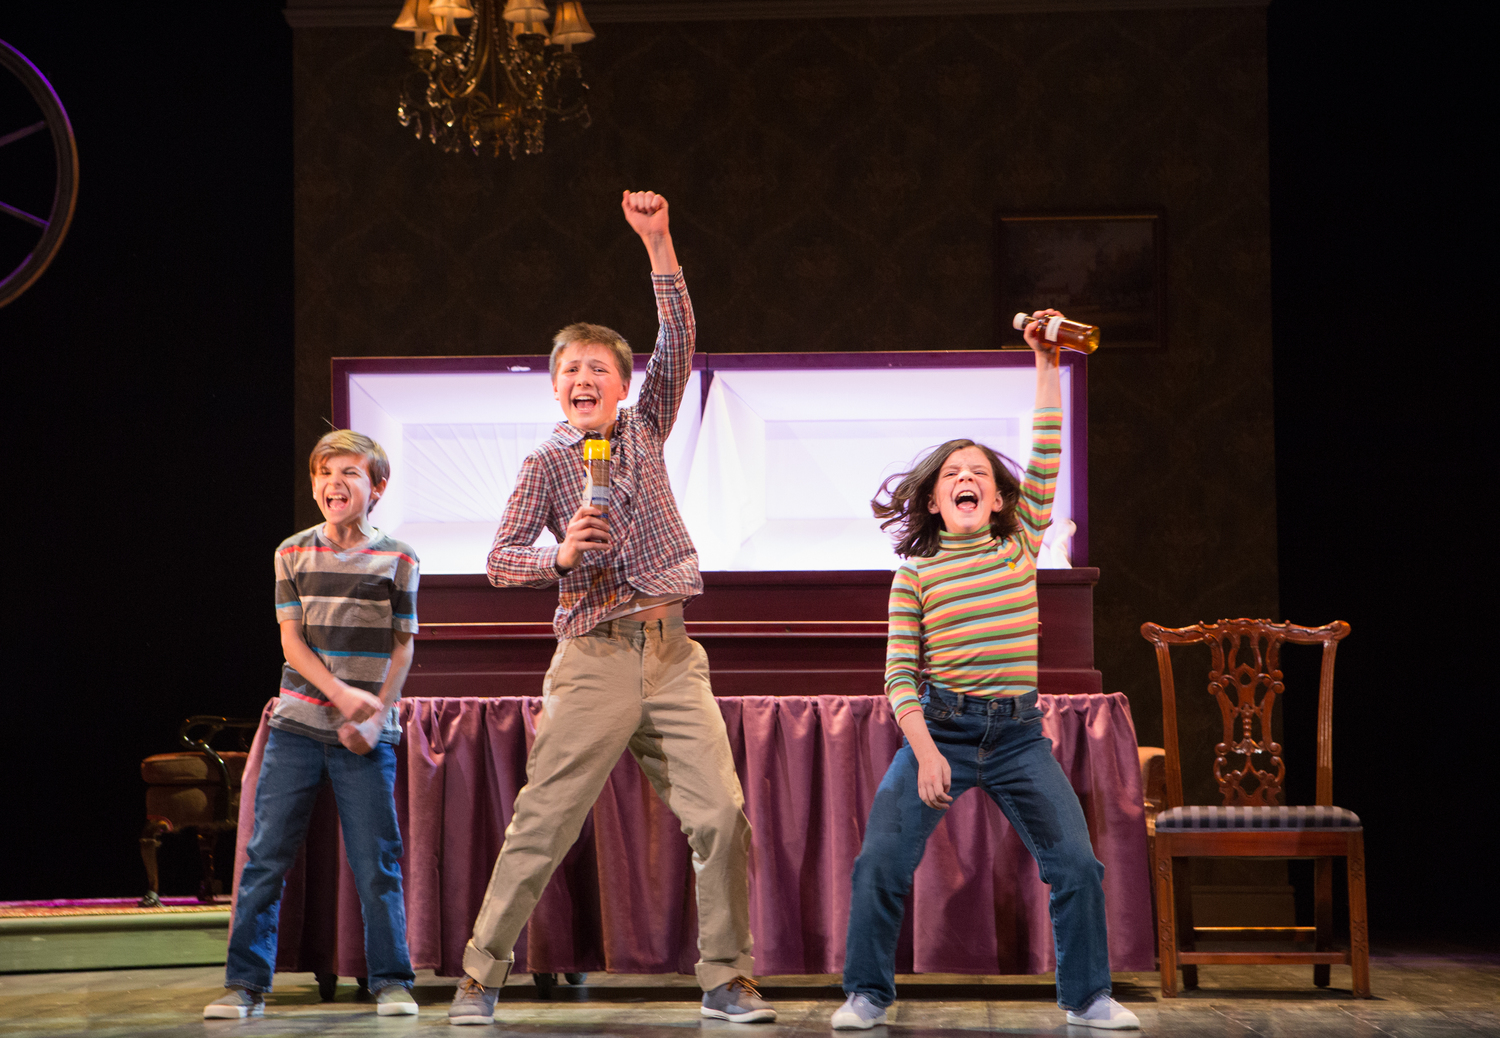 BWW Review: Musical Stage Company's FUN HOME is a Little Show with a lot of Heart